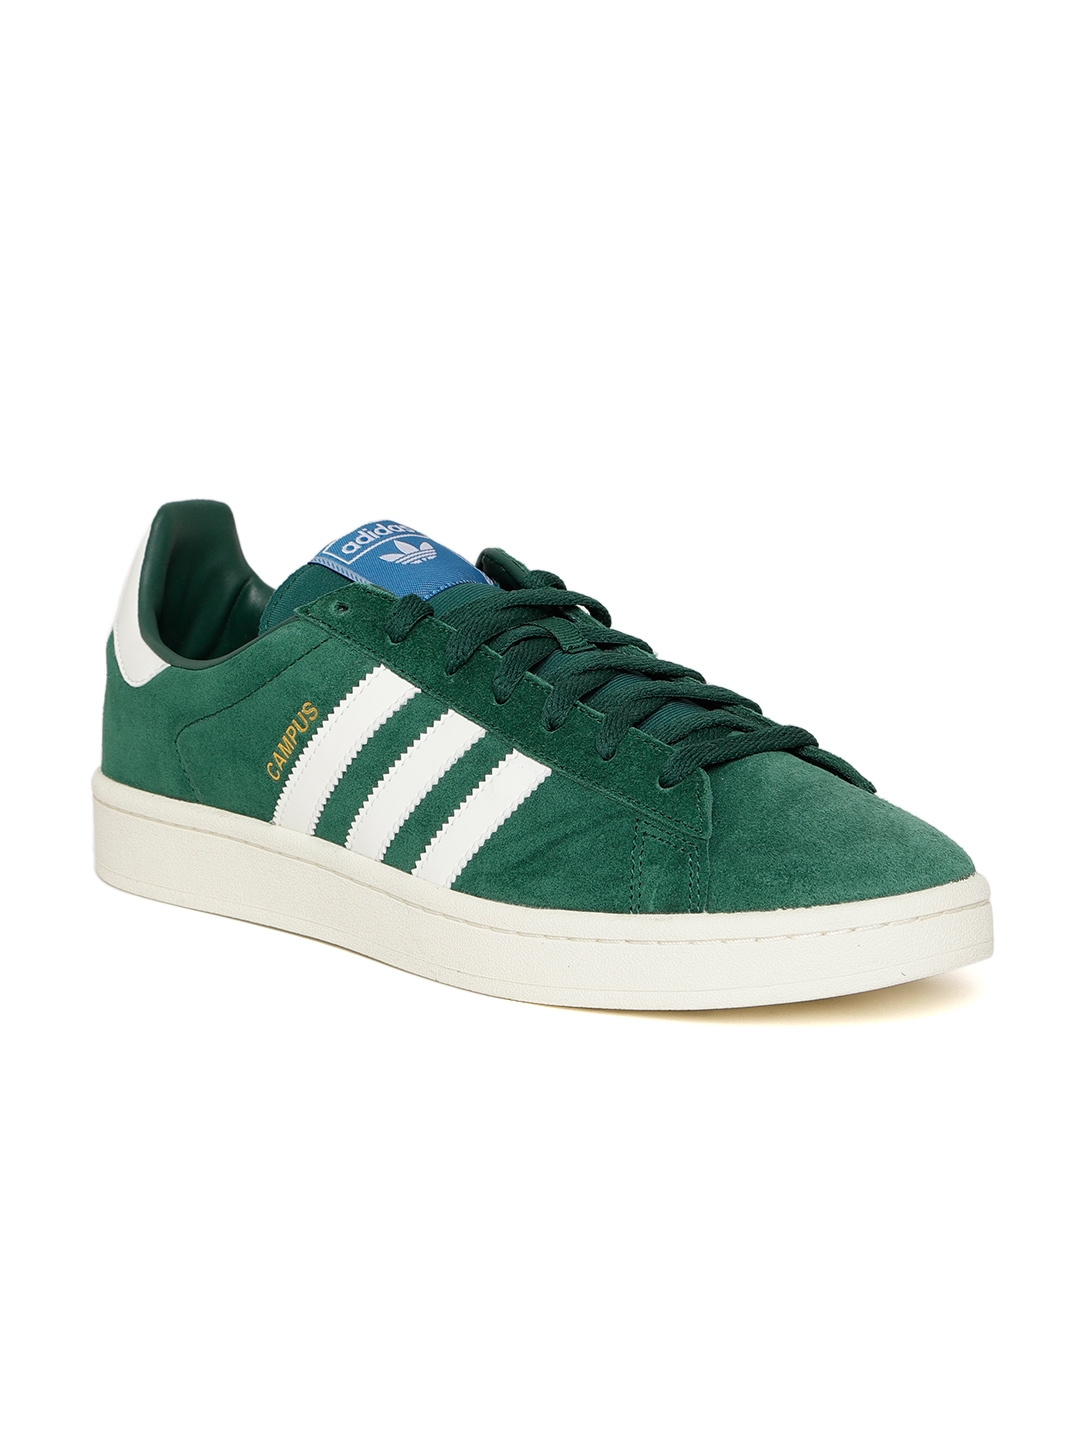 newest e1af1 2f277 Adidas Originals Men Green Campus Suede Sneakers